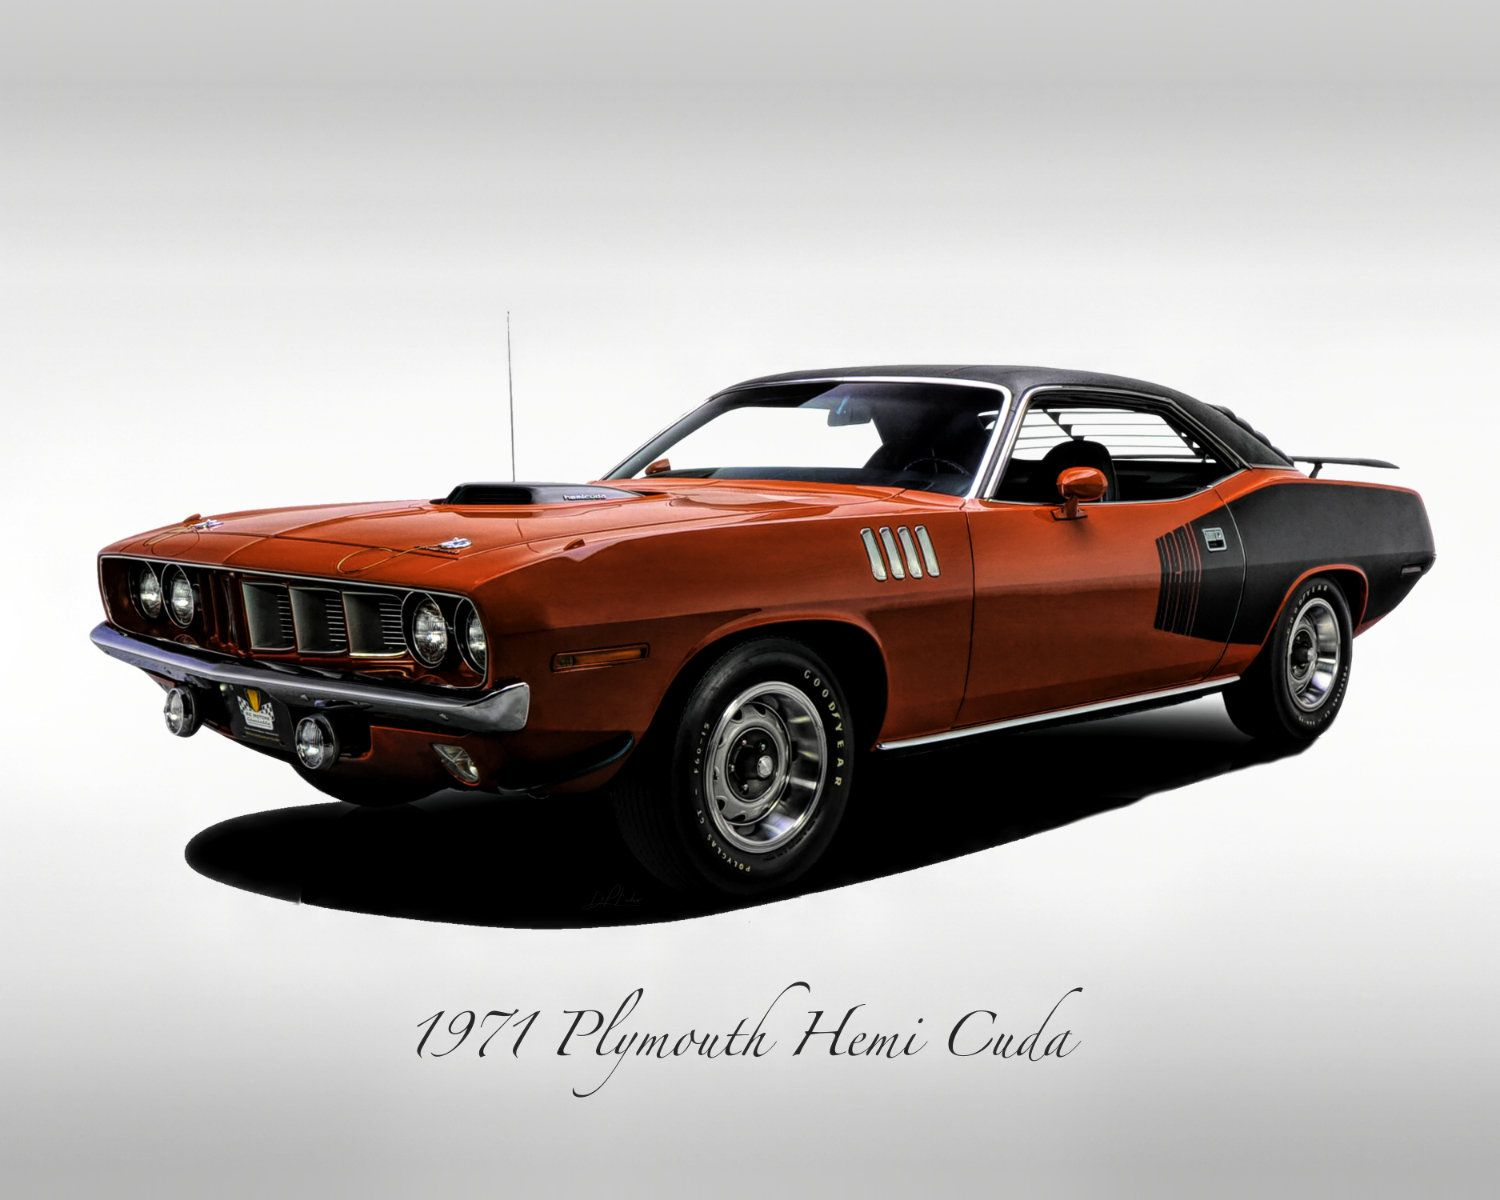 Classic Cars – 1971 Plymouth Barracuda – Muscle Car – Print